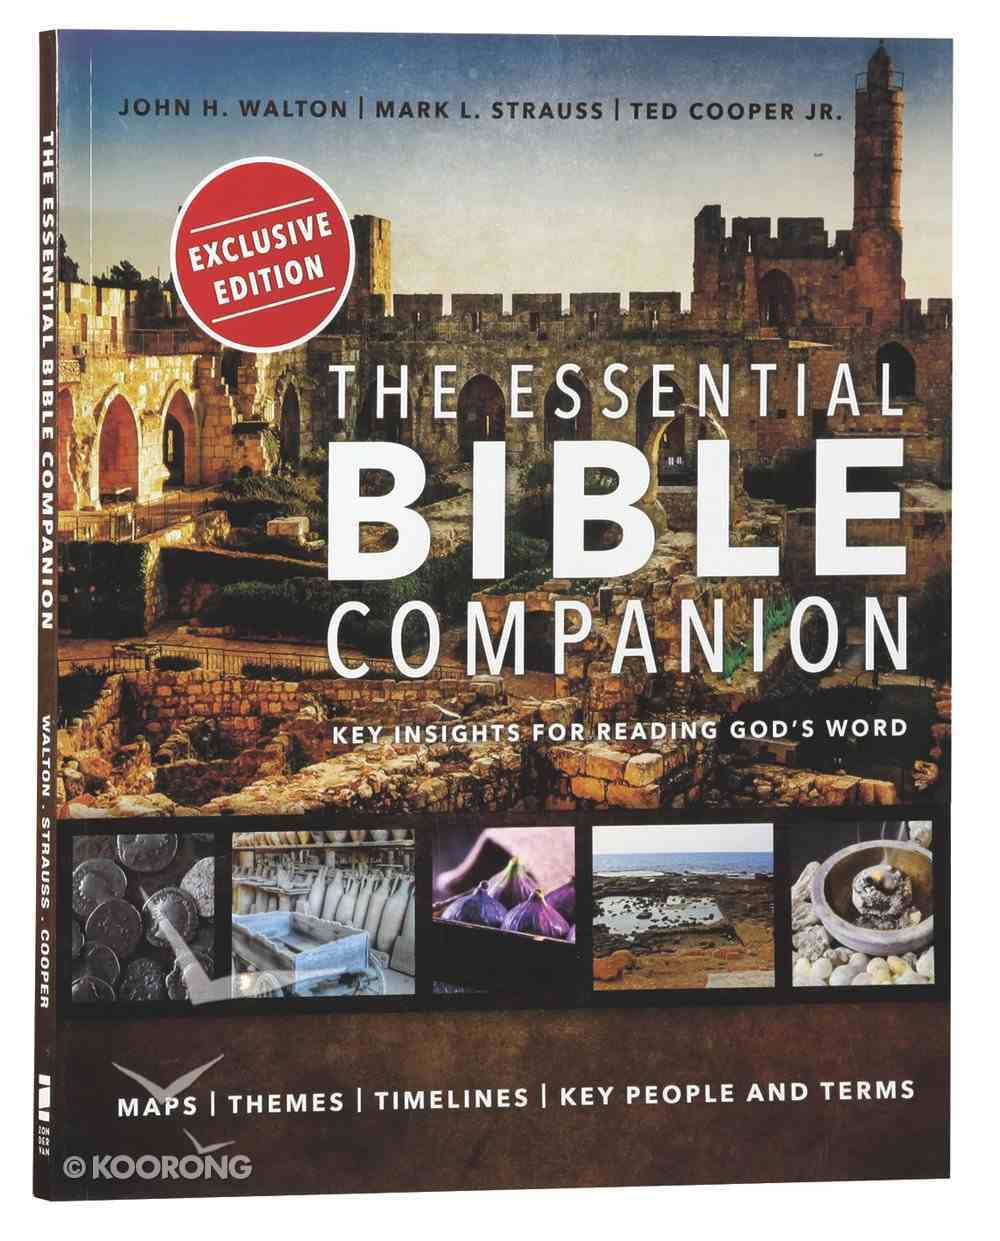 The Essential Bible Companion: Key Insights For Reading God's Word Paperback